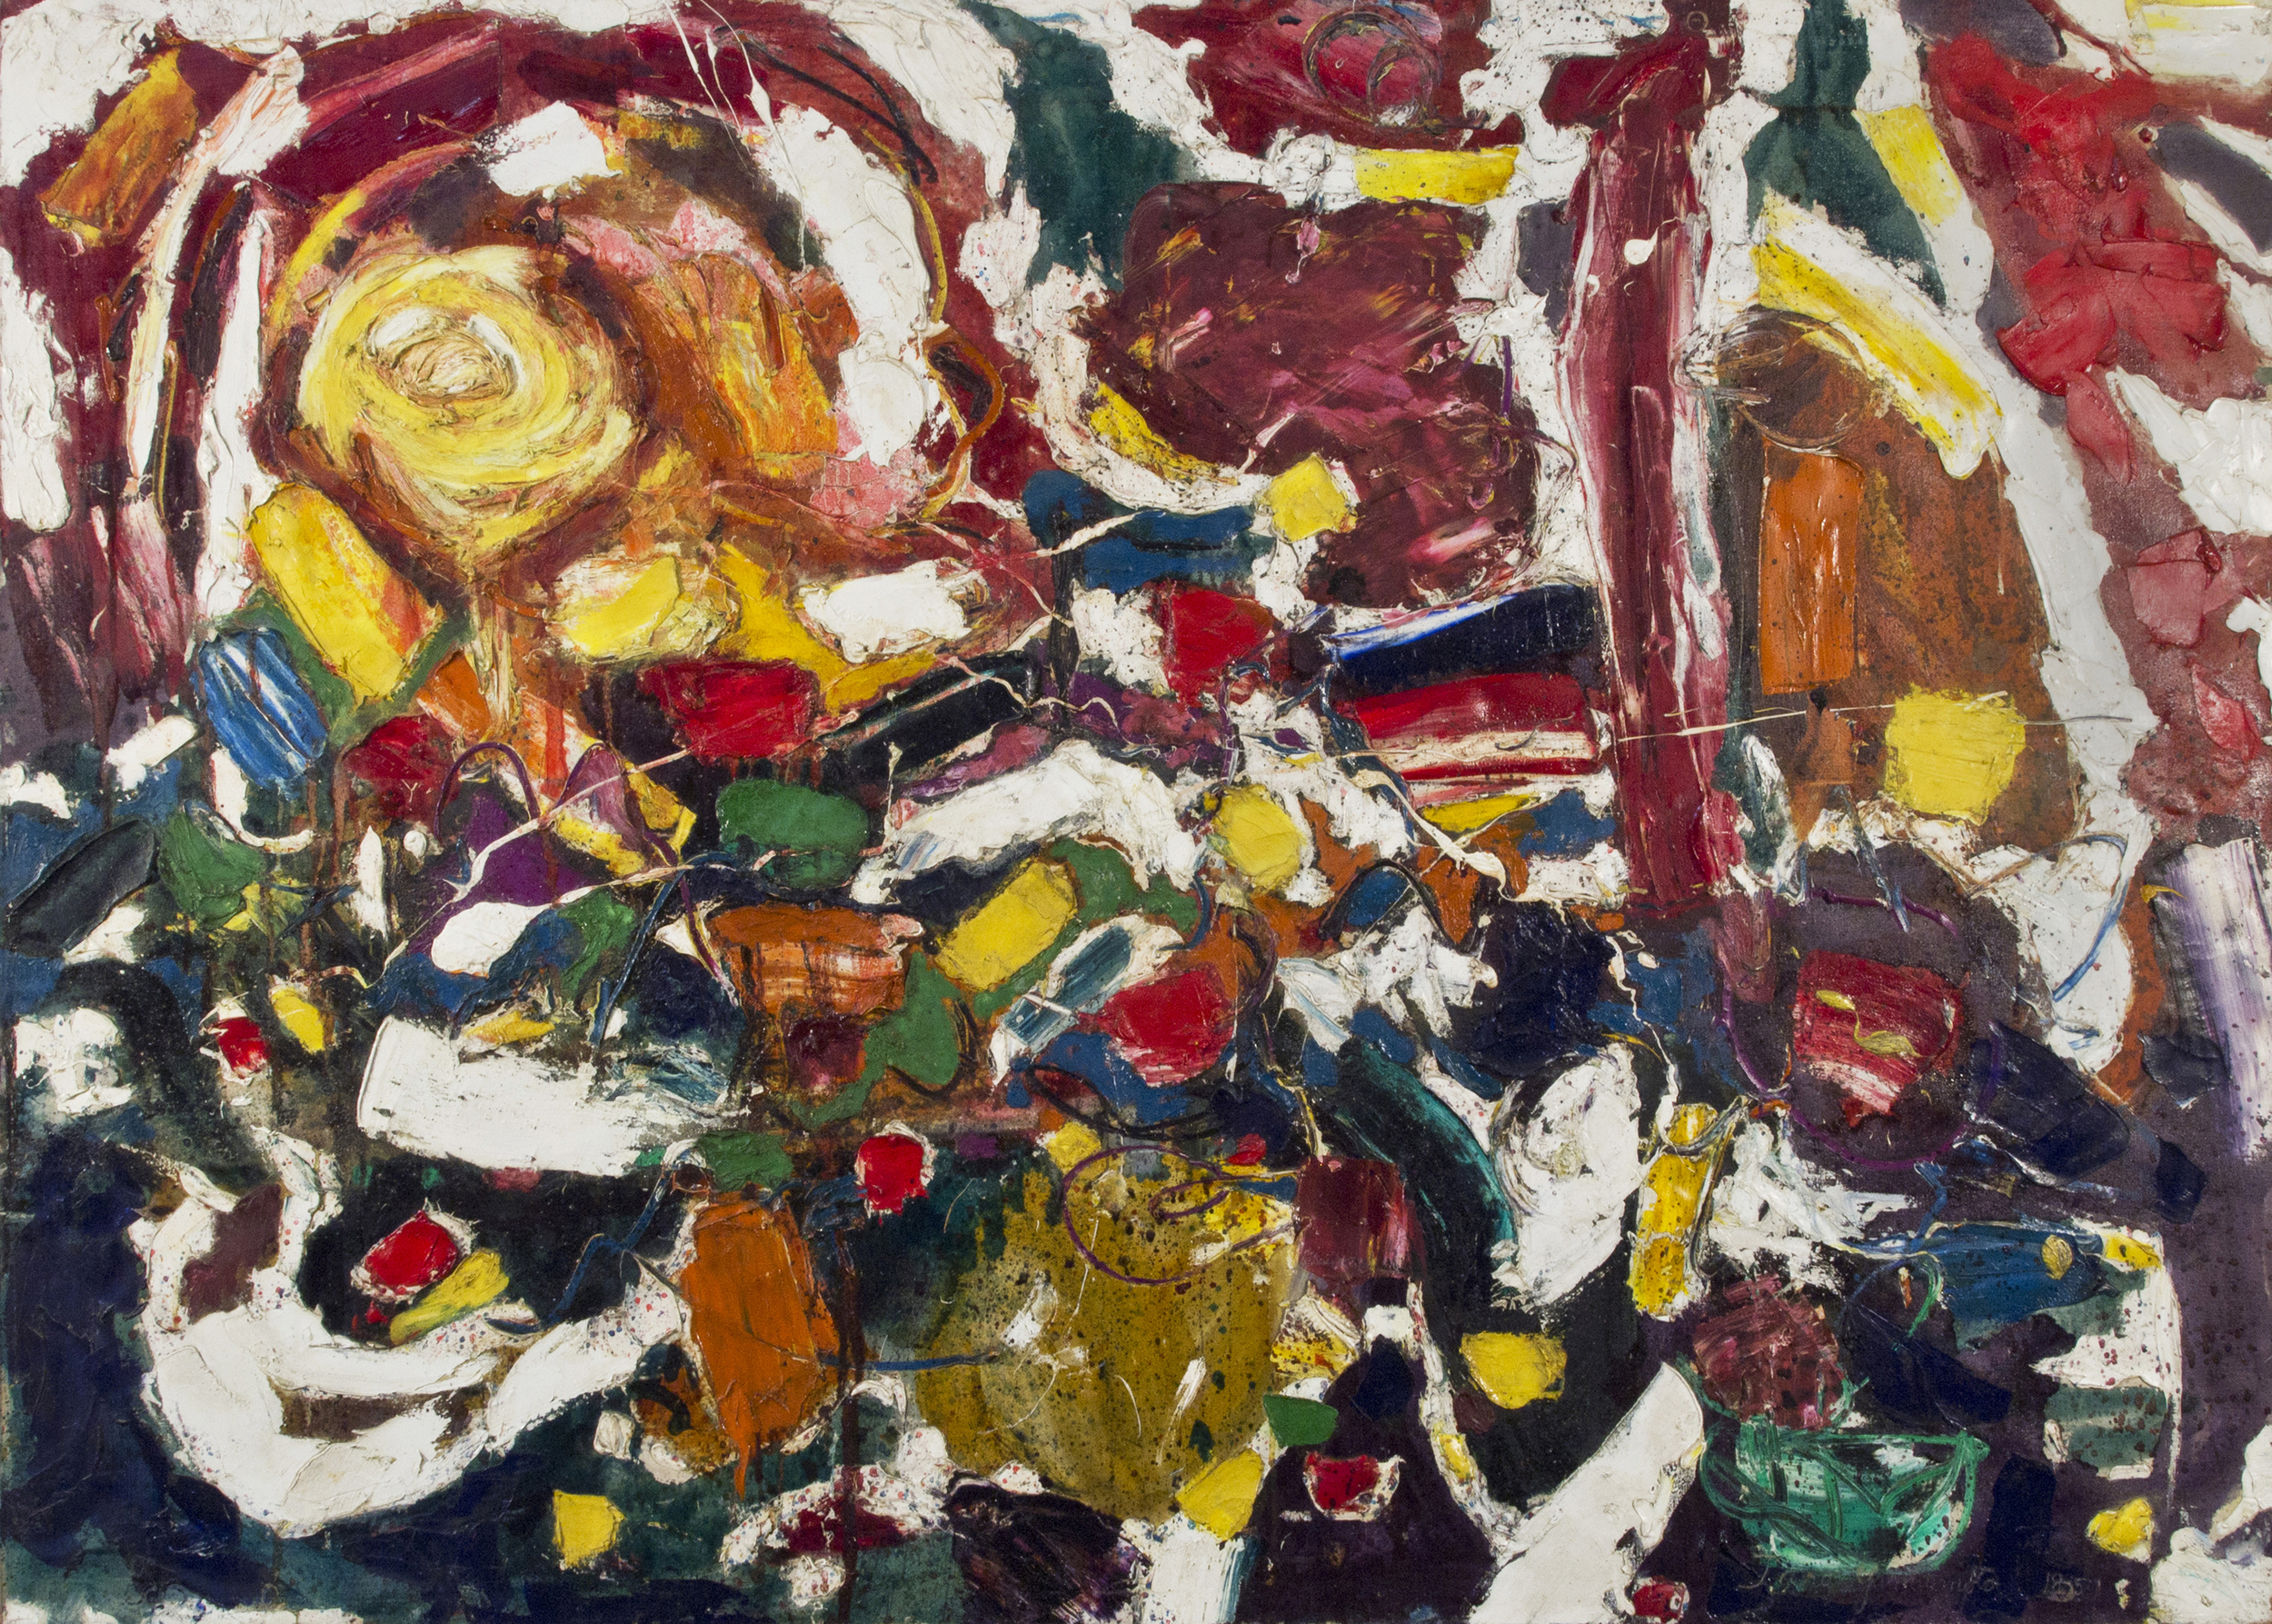 Untitled, 1957  , oil on canvas, 50 x 70 inches